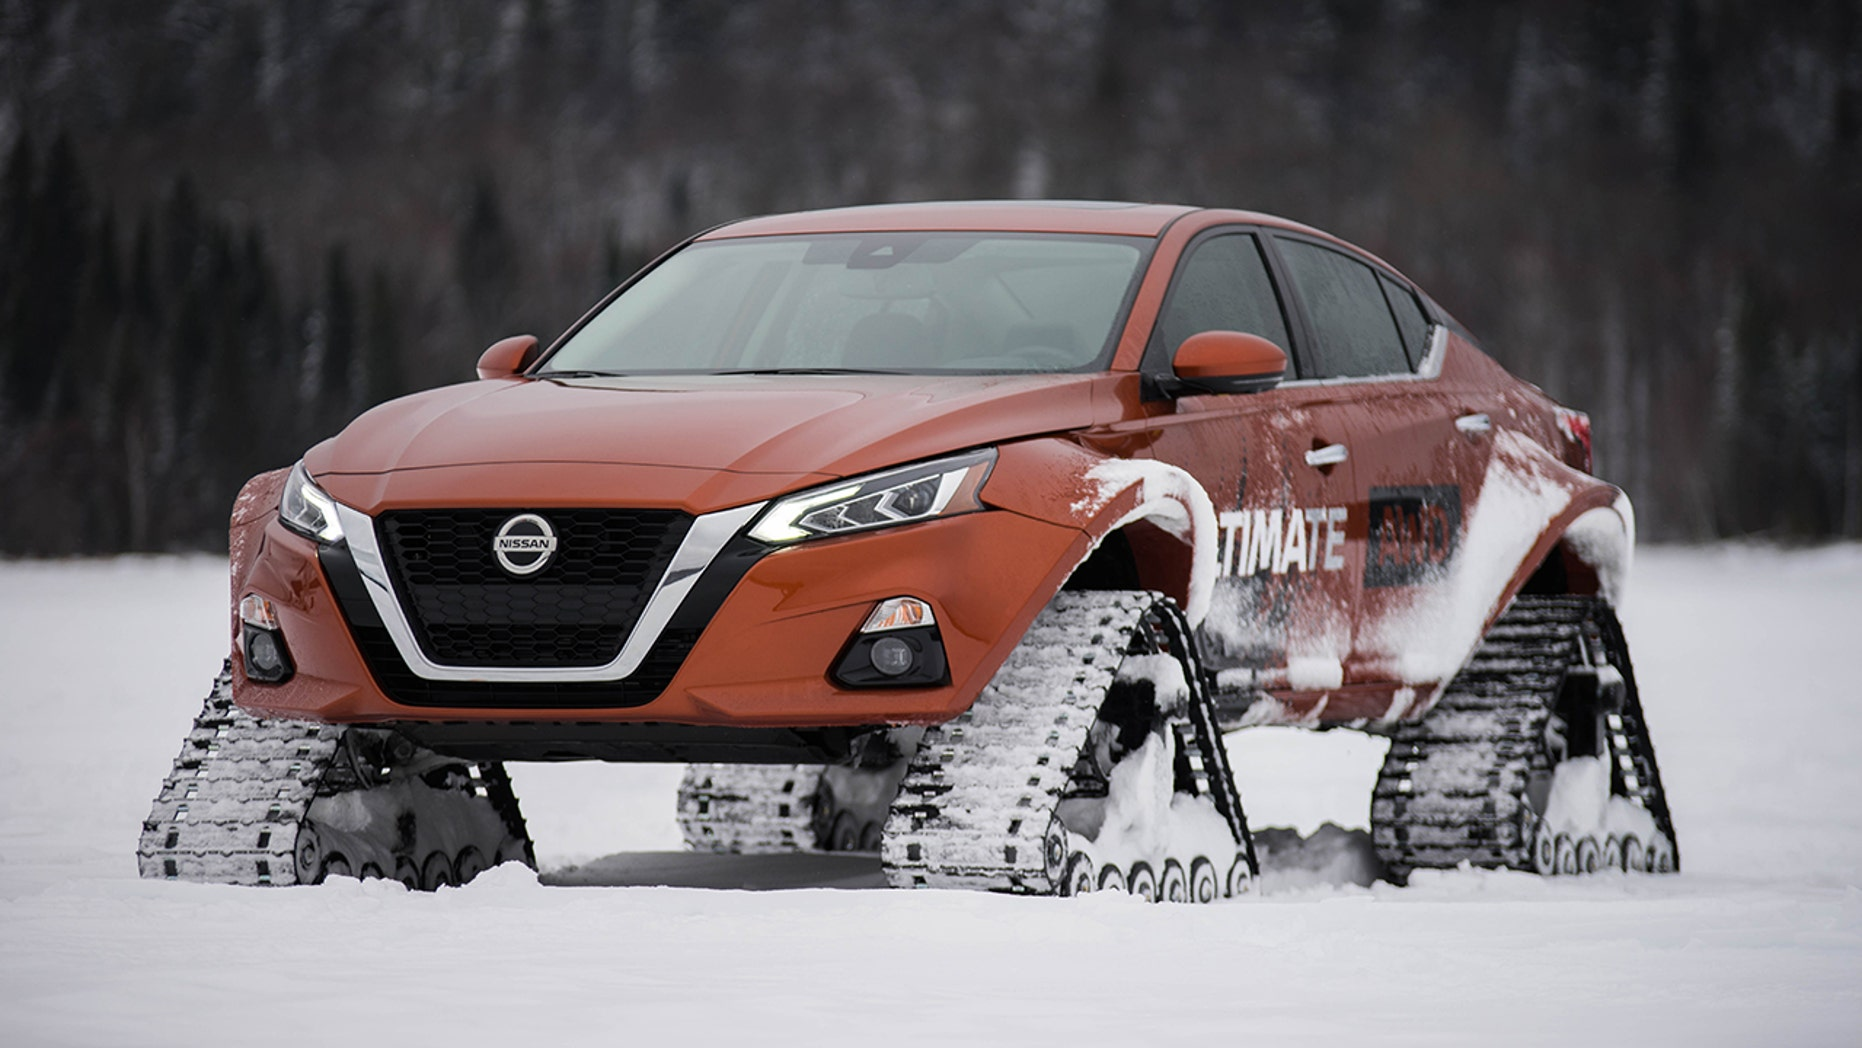 Nissan turned the Altima into snowmobile | Fox News